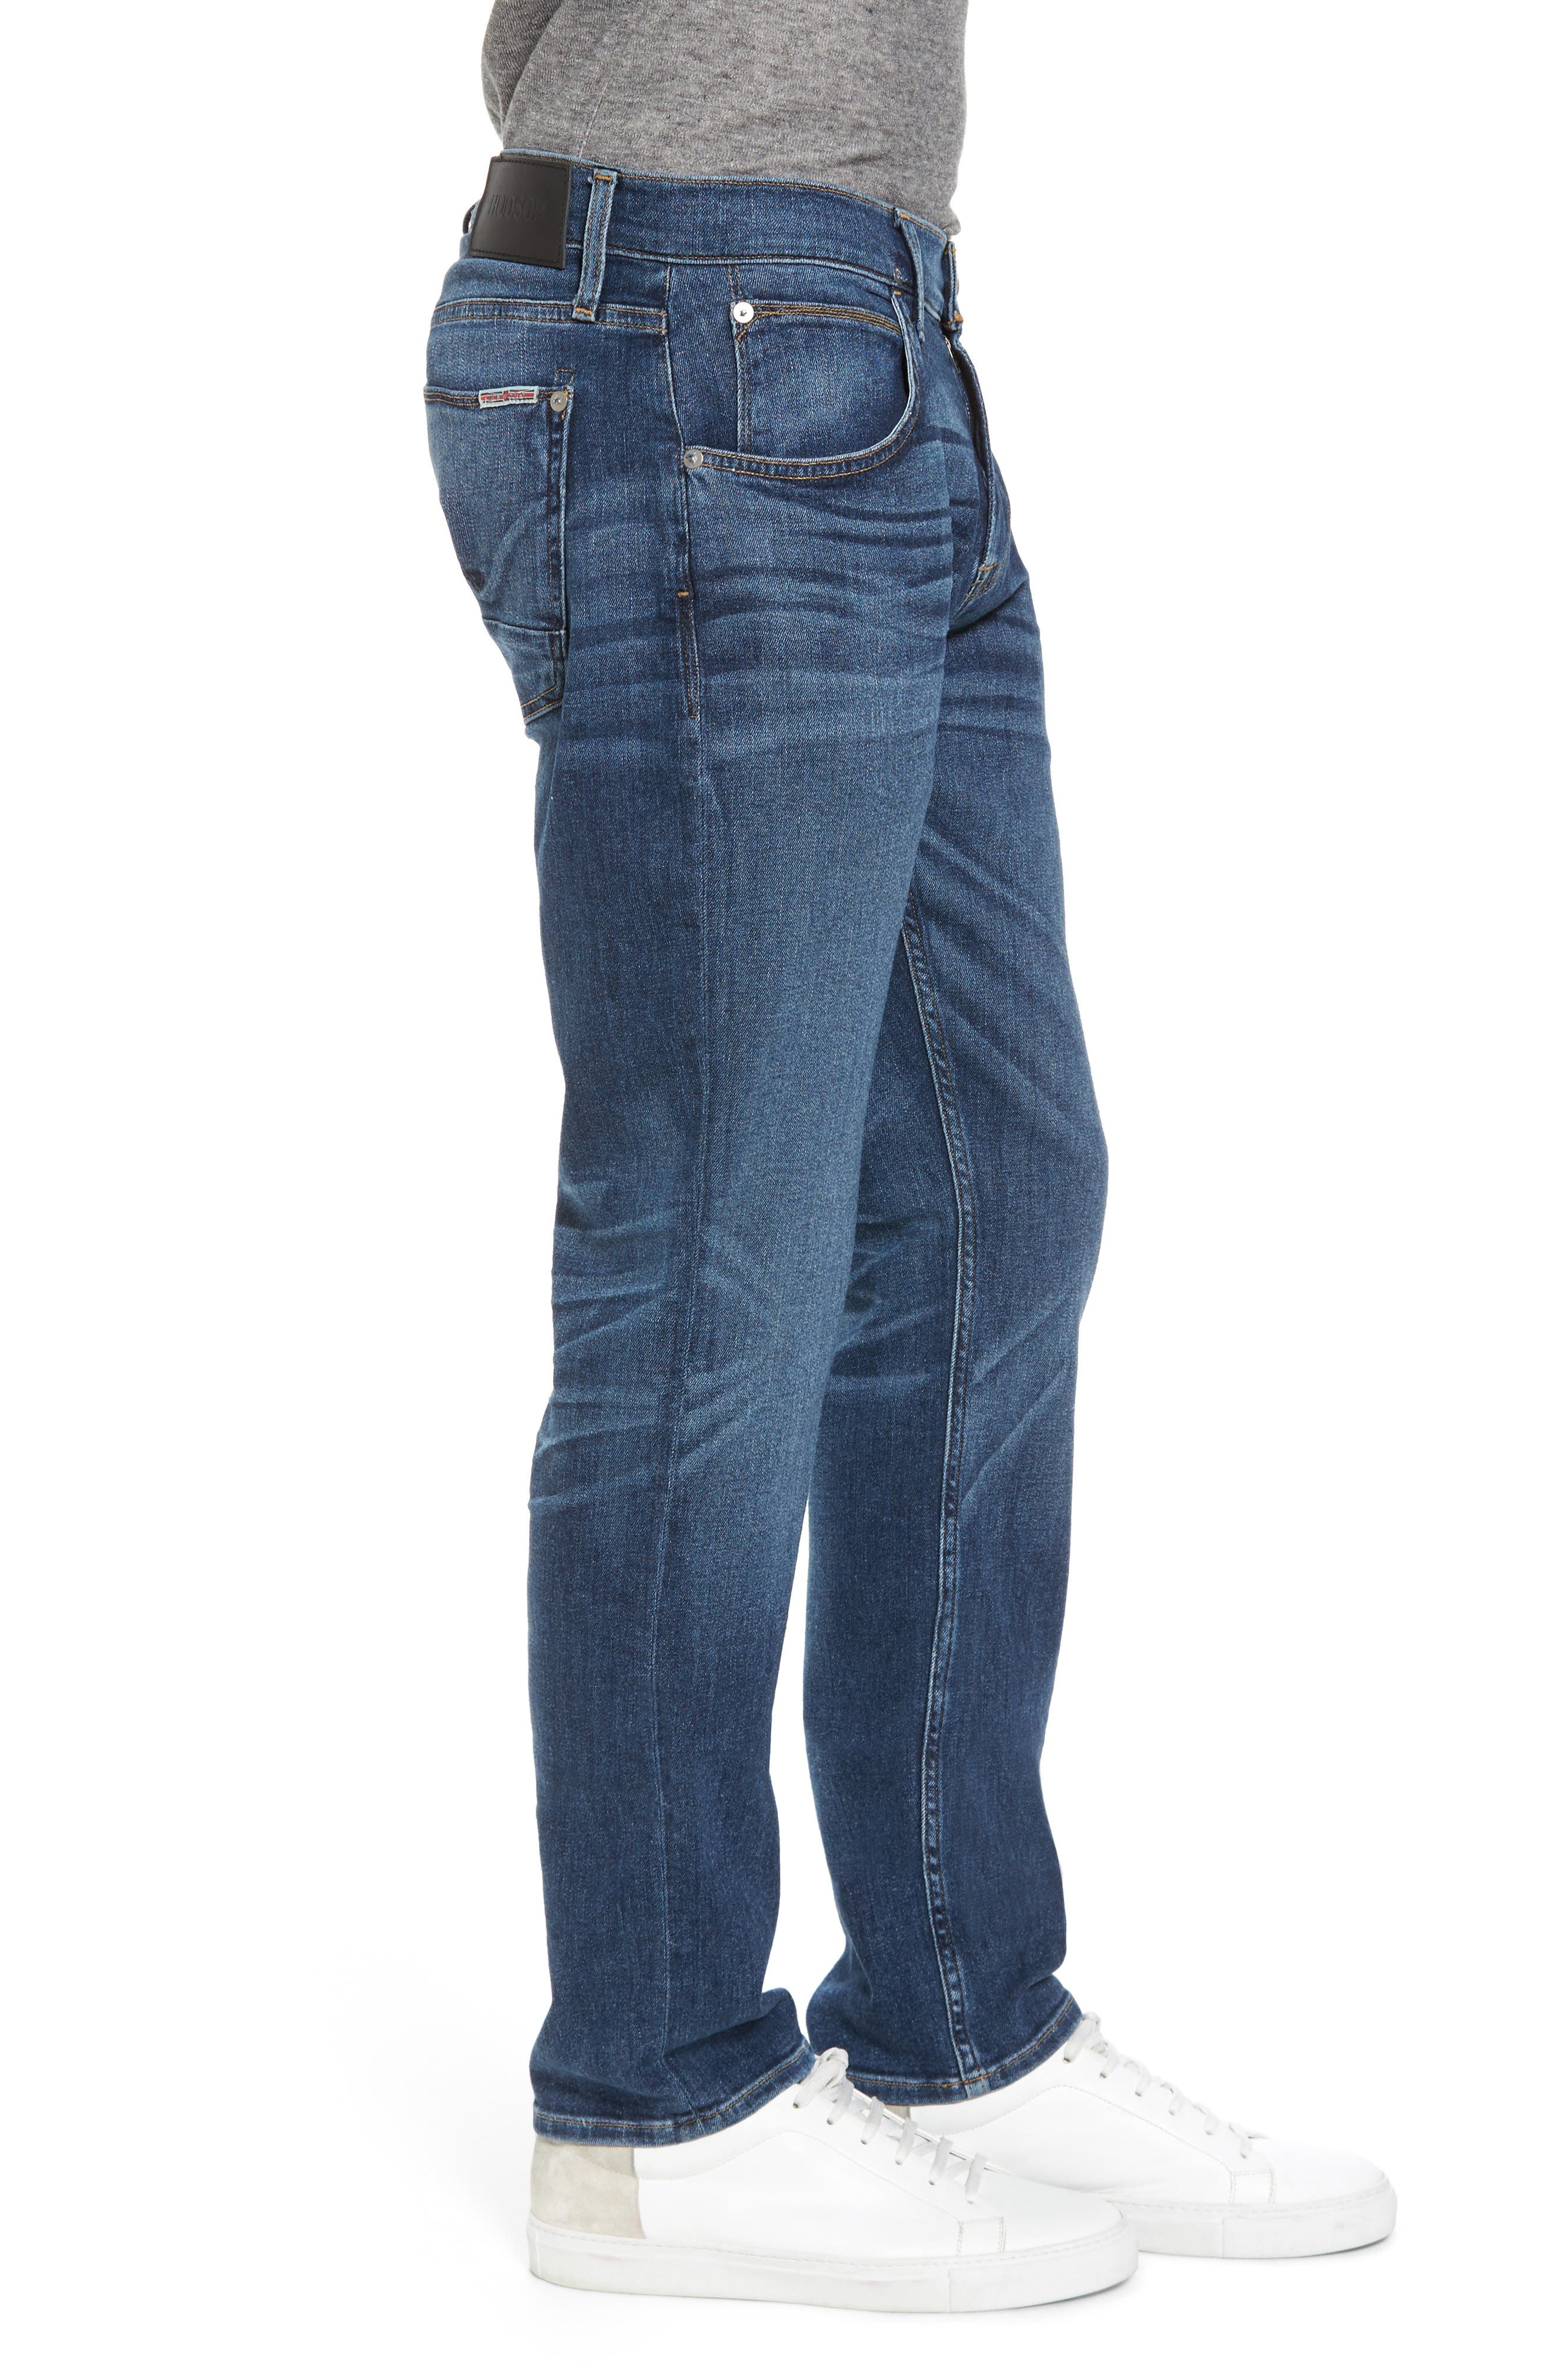 Blake Slim Fit Jeans,                             Alternate thumbnail 3, color,                             420